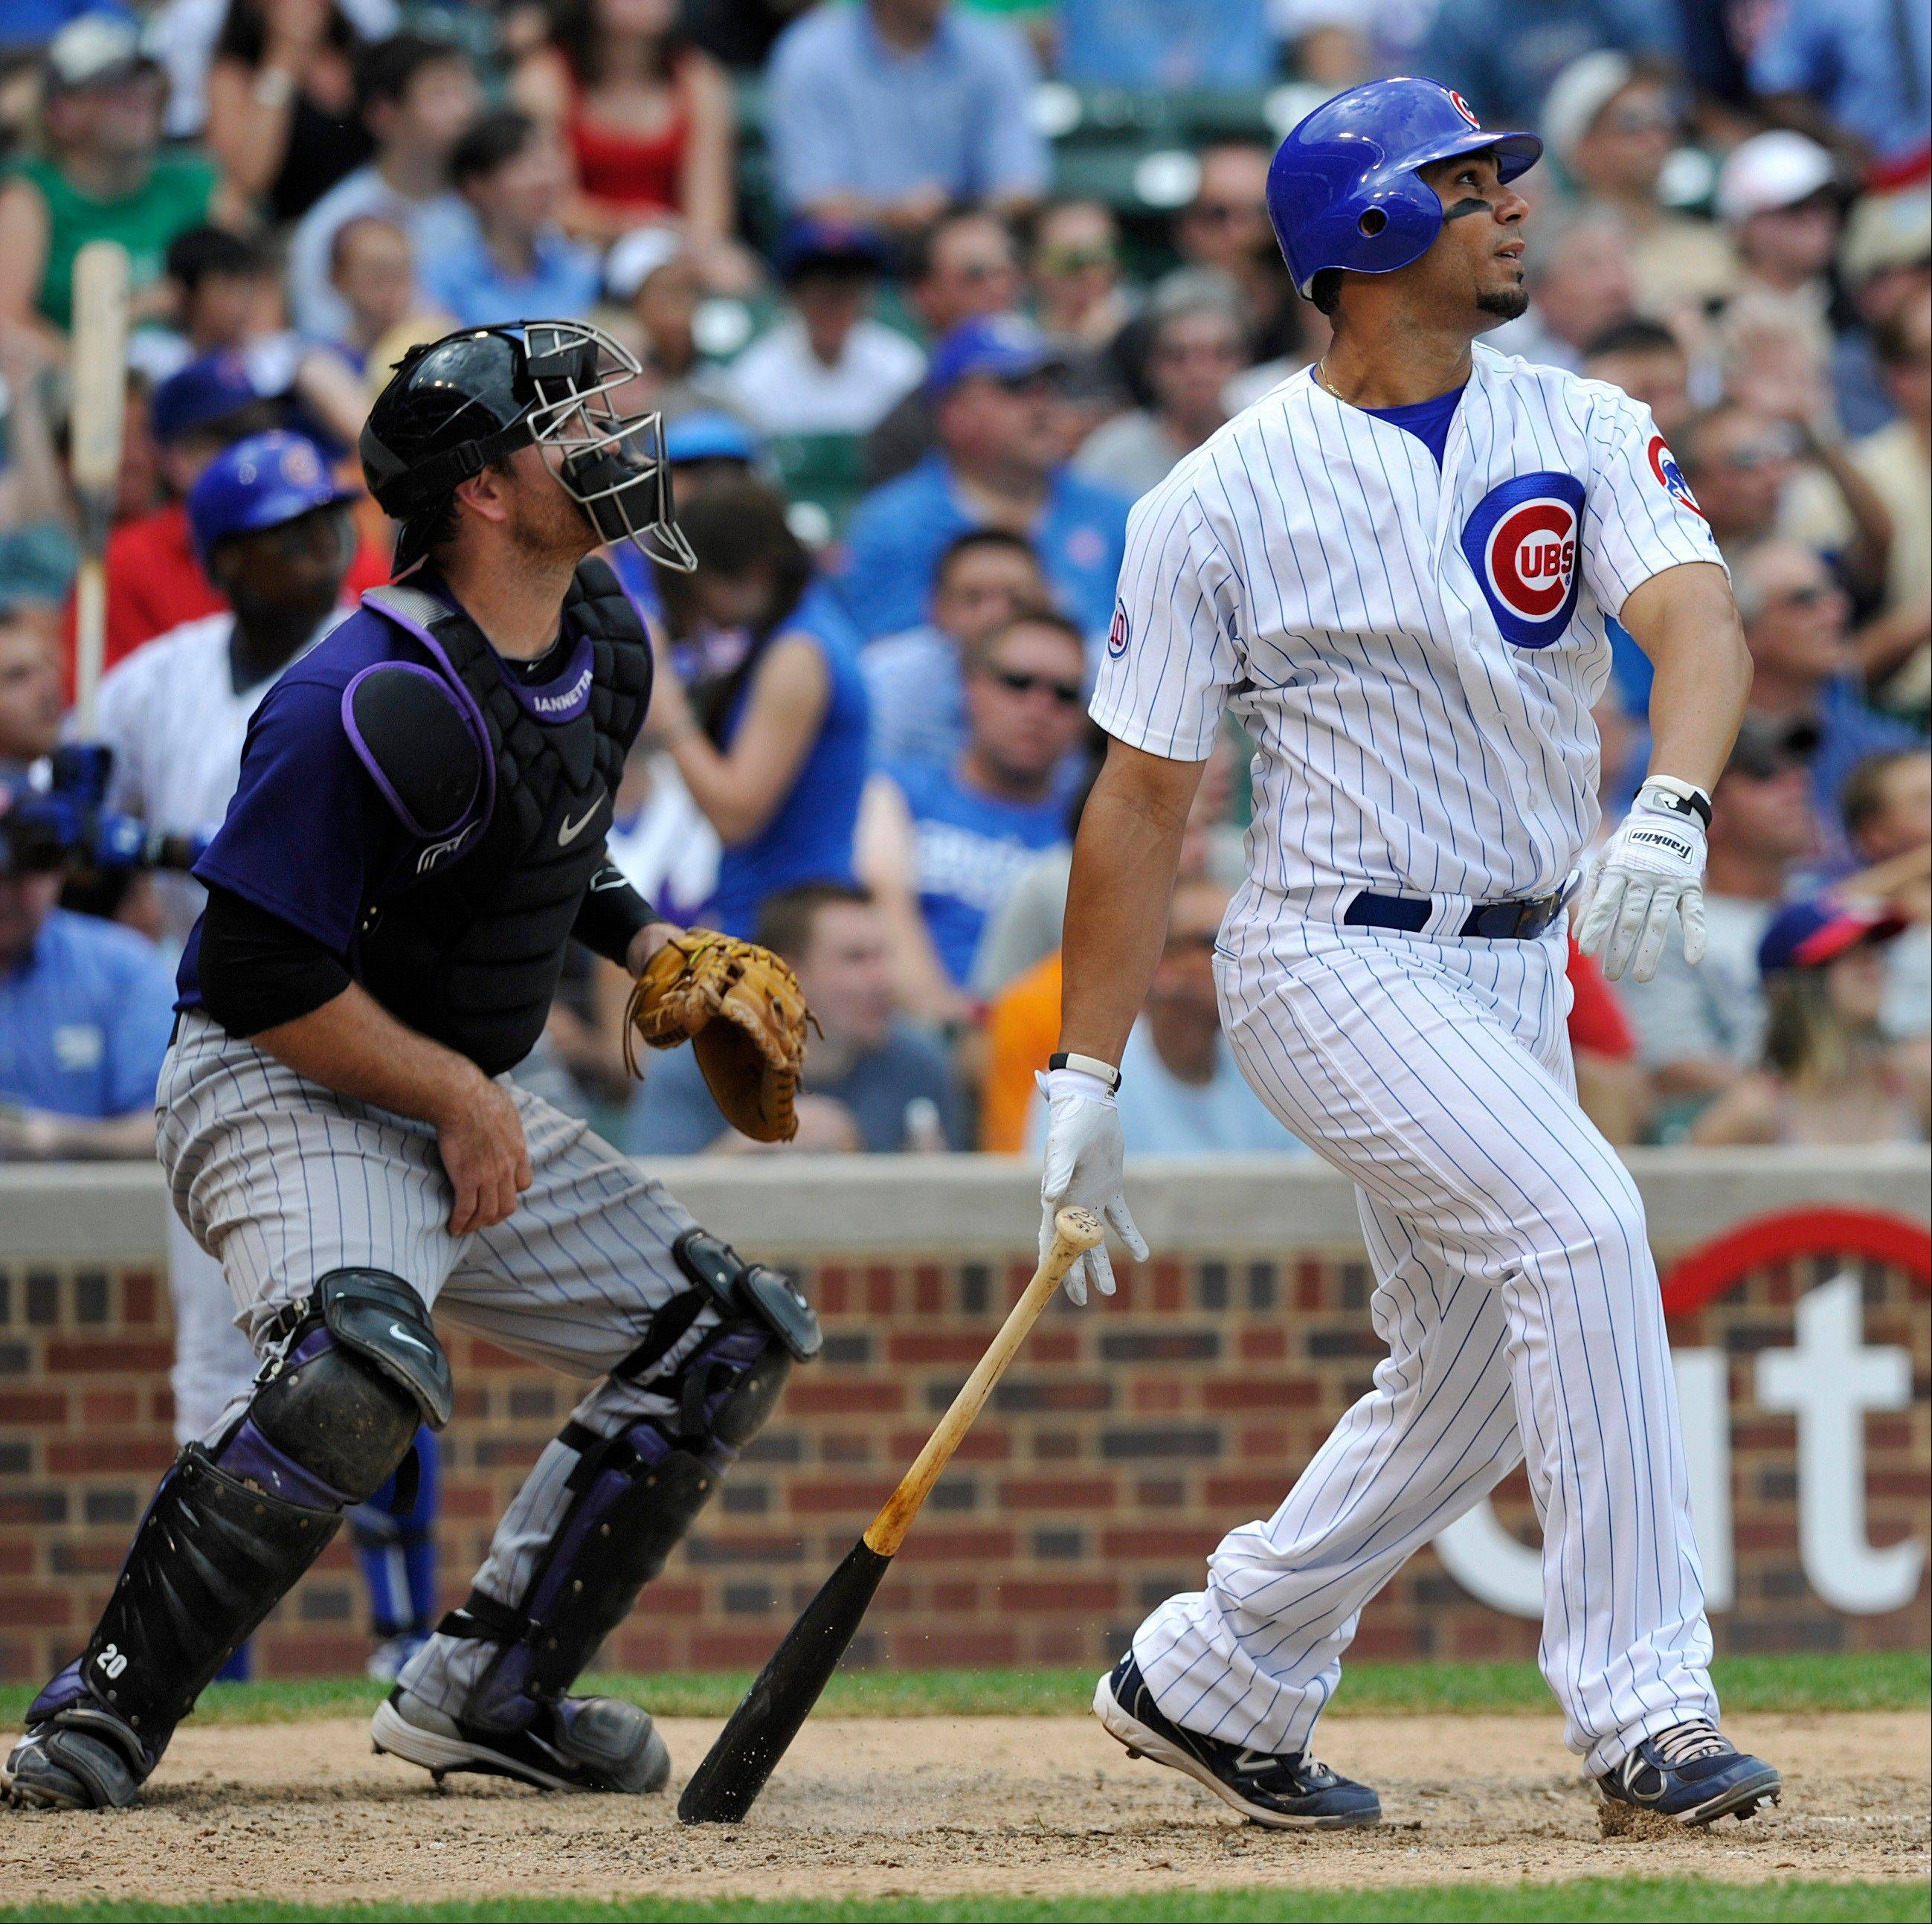 With Rockies catcher Chris Iannetta looking on, Carlos Pena watches his 2-run home run during the fifth inning of the Cubs' victory Monday at Wrigley Field. Pena had 2 homers on the day and now has 16 for the season.